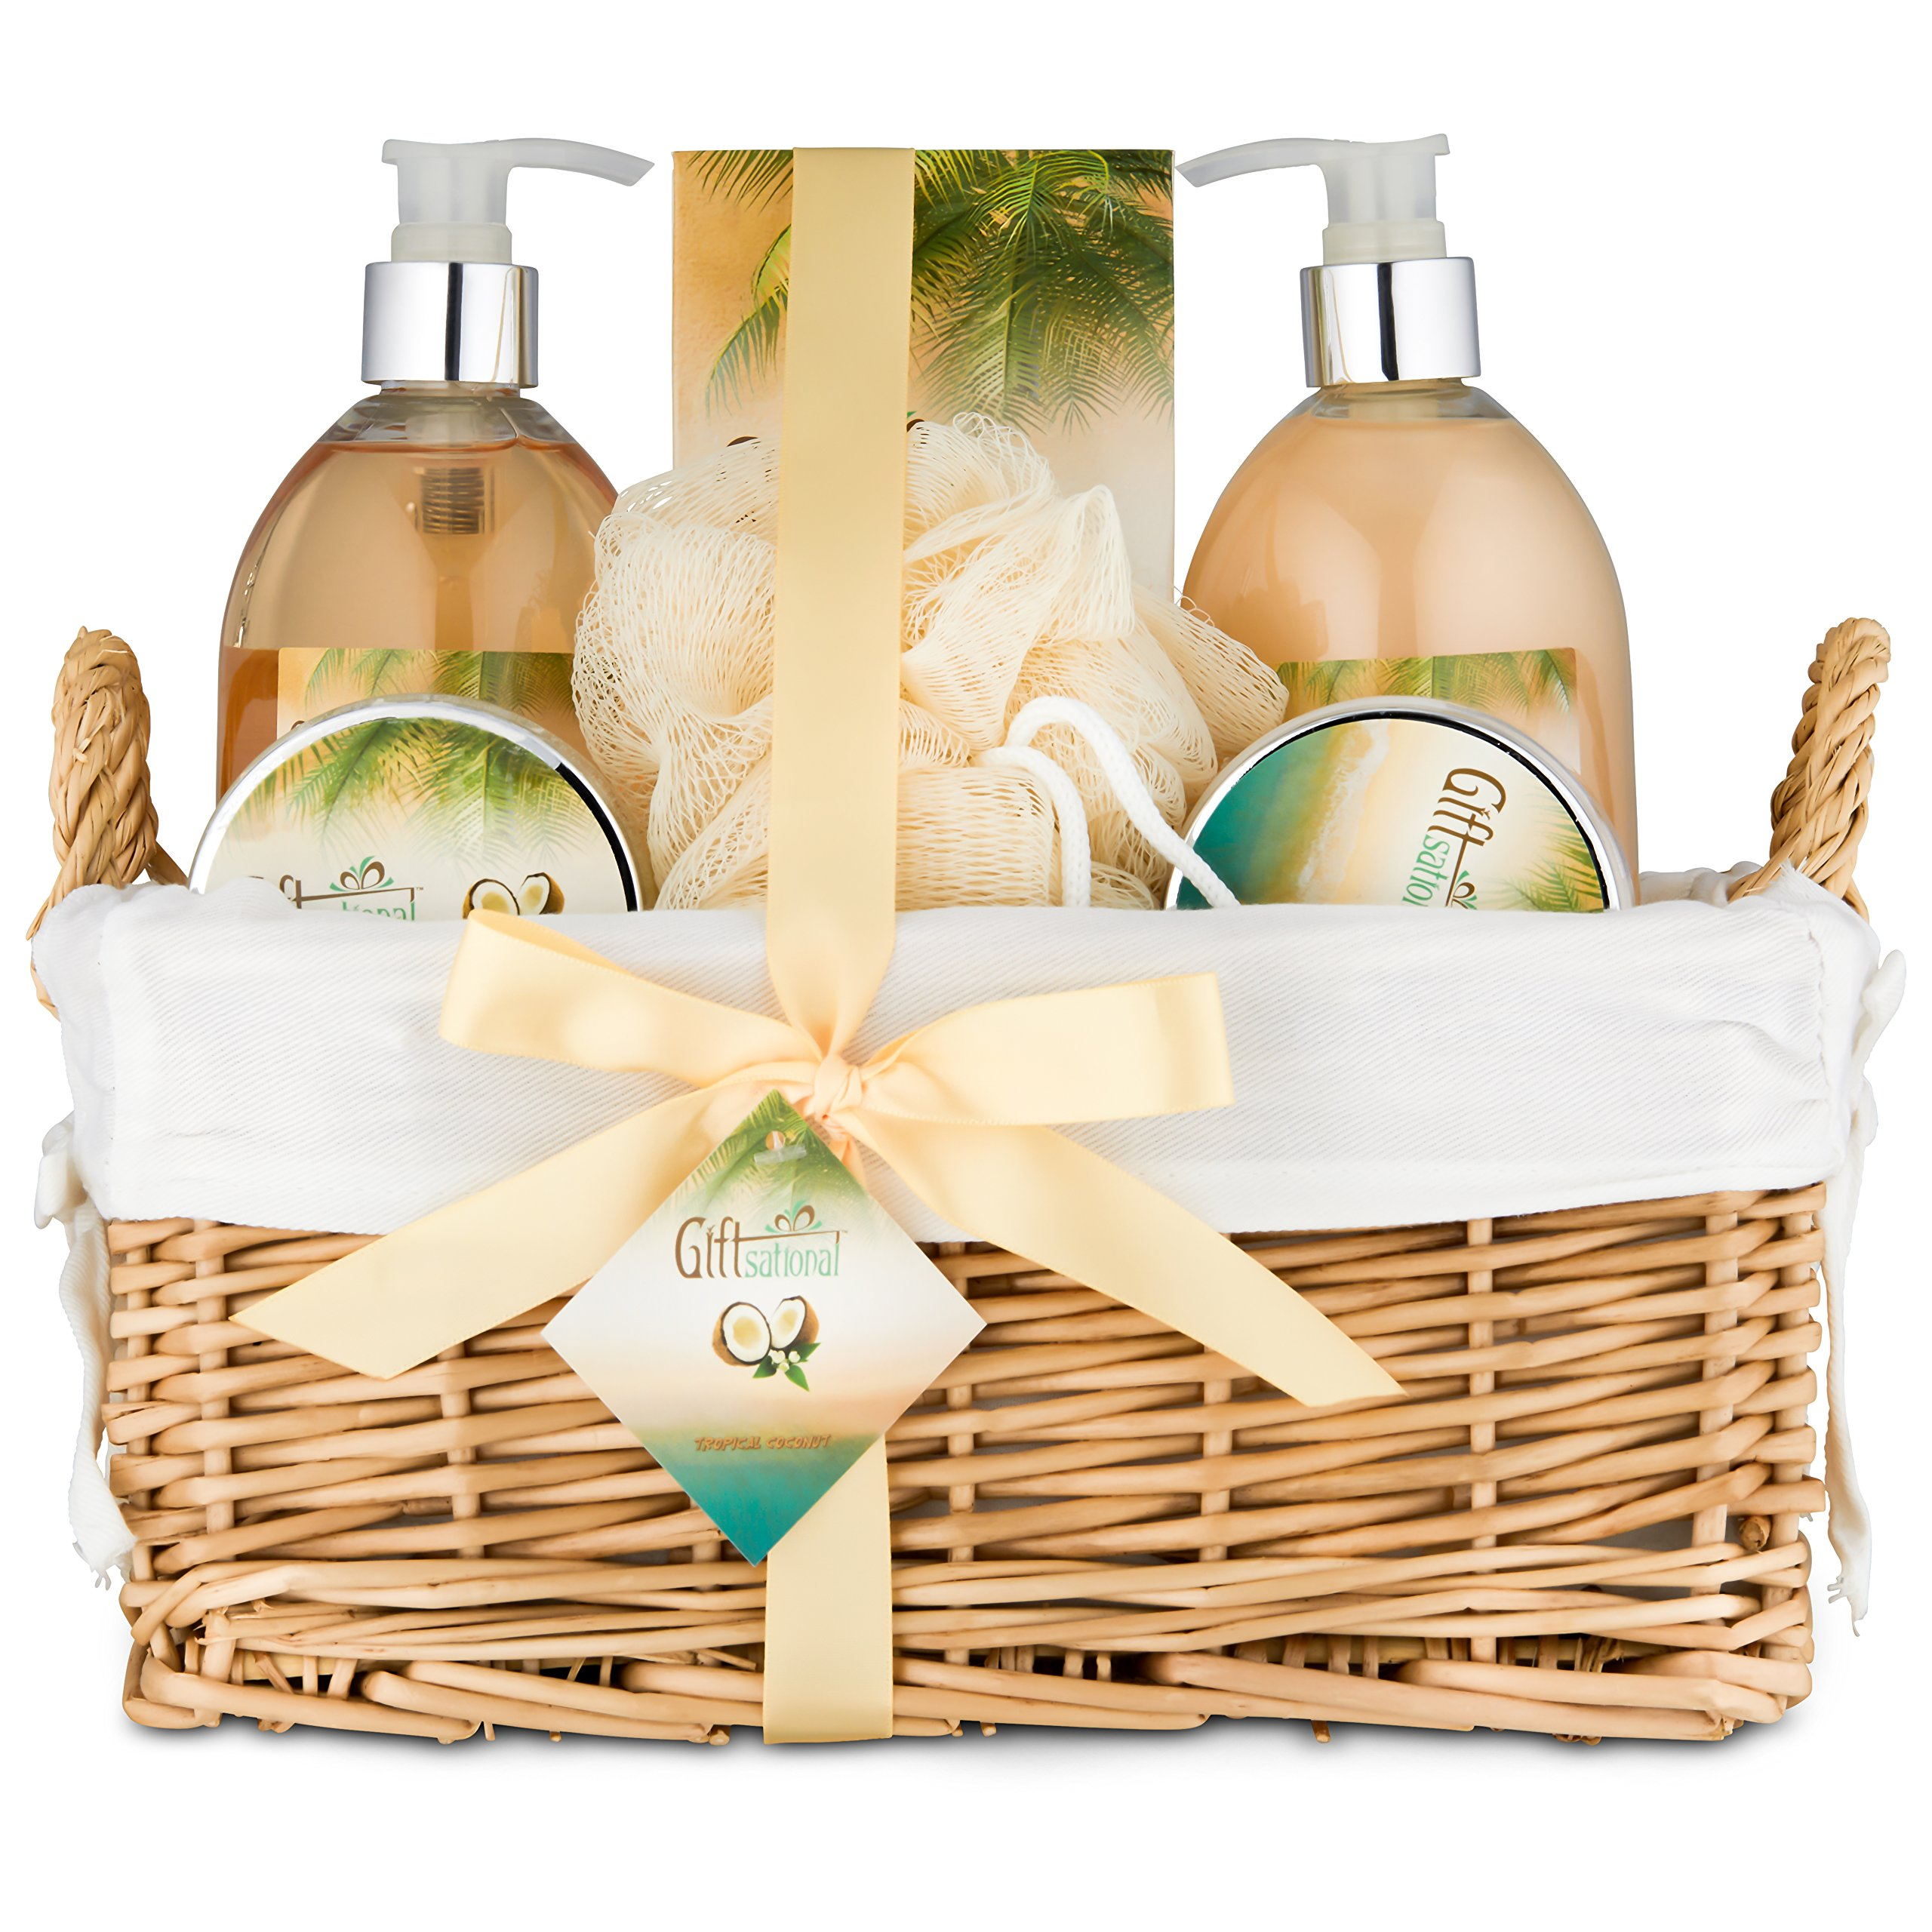 Spa Gift Basket for Women With Tropical Coconut Fragrance in Large Willow Basket | Includes Bubble Bath, Shower Gel, Body Scrub, Body Lotion, Bath Salts | Great Birthday, Anniversary or Wedding Gift